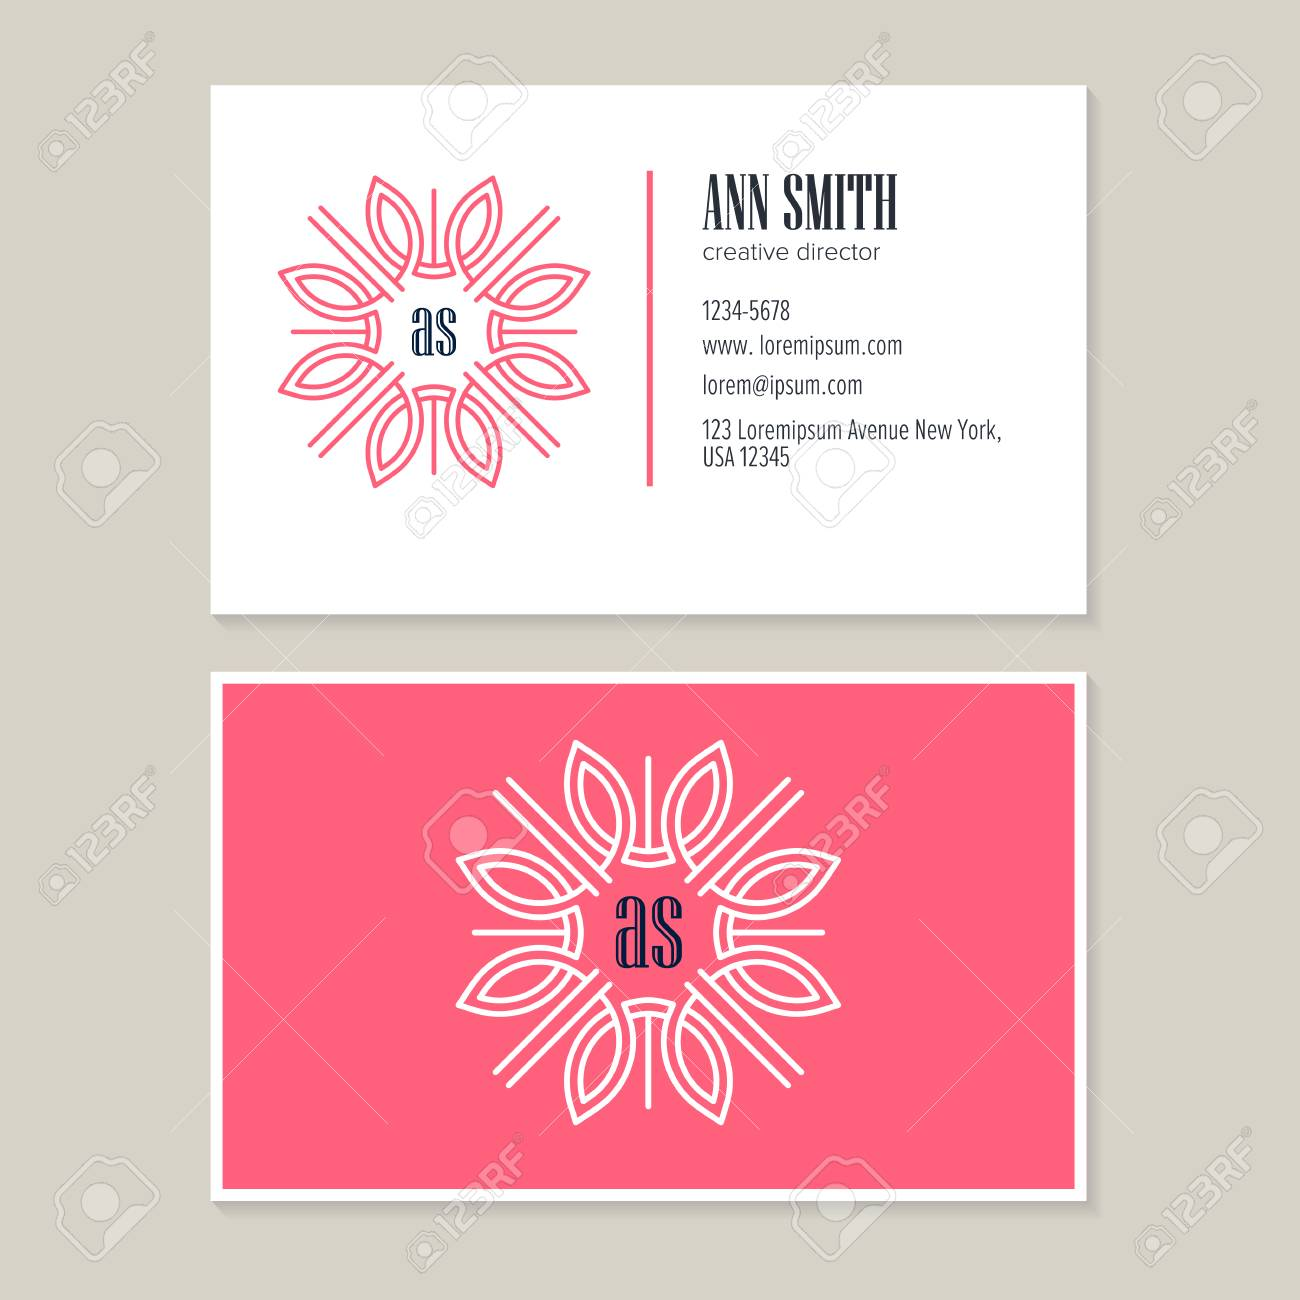 Elegant Flower Line Art Logo Design With Template Business Card ...